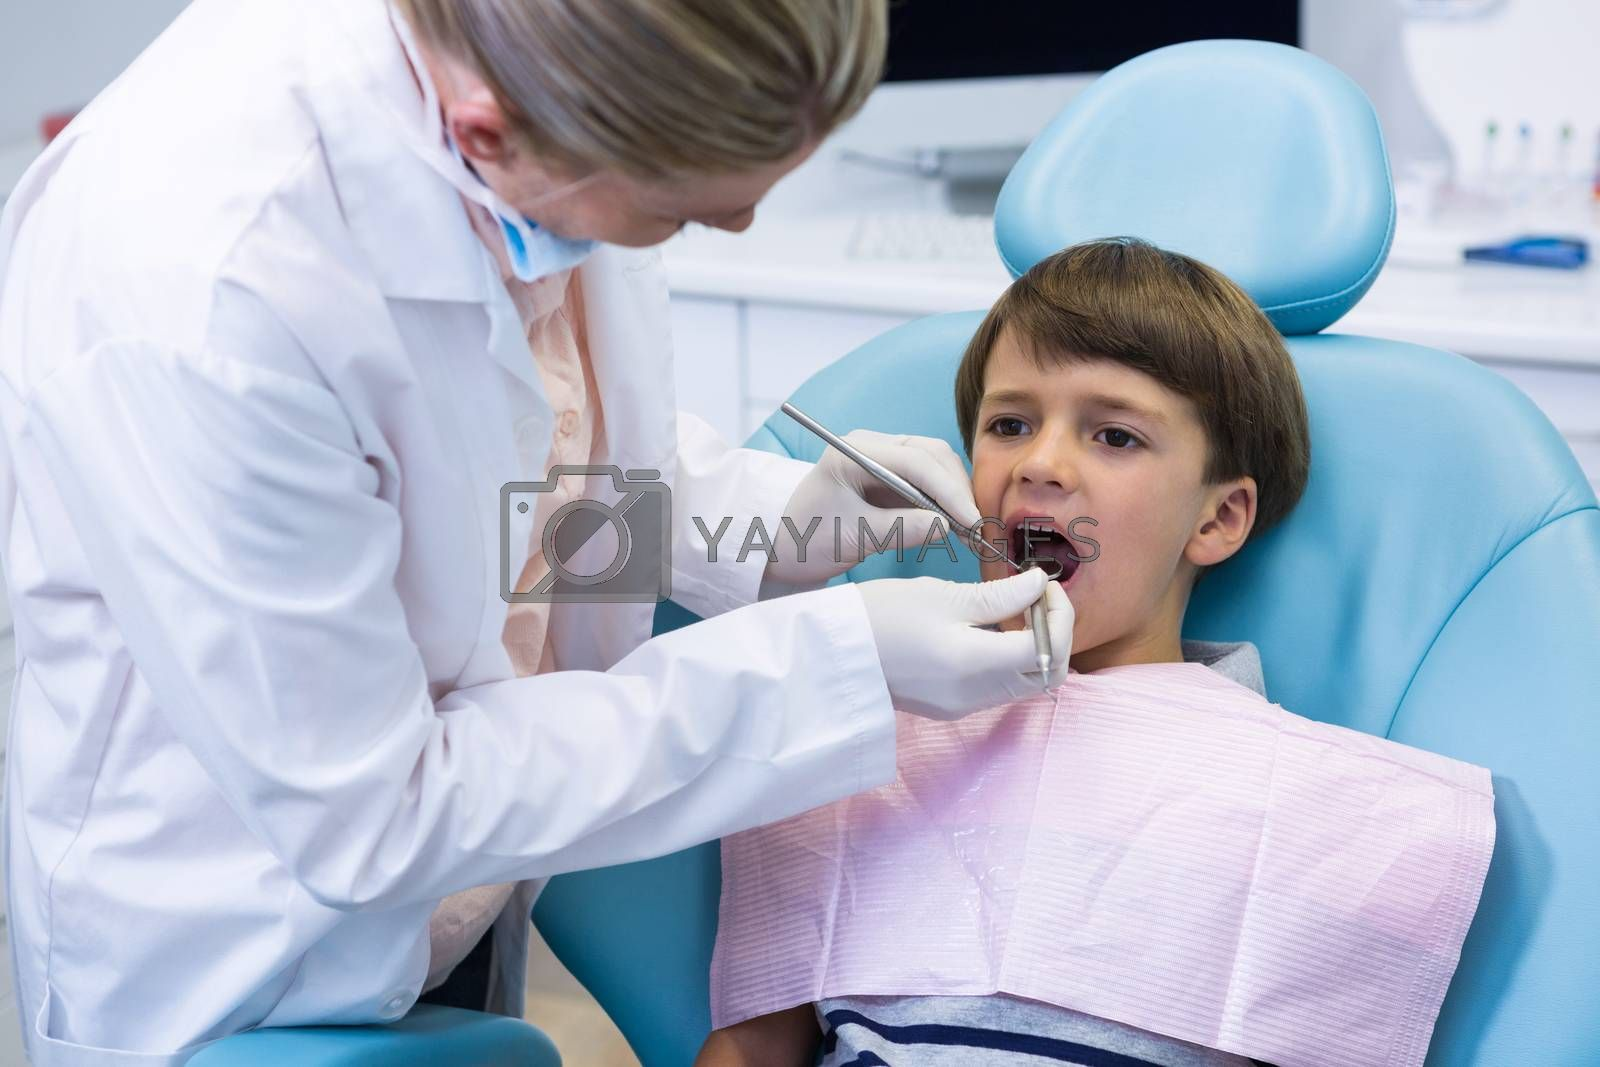 Boy receiving dental treatment by dentist at medical clinic